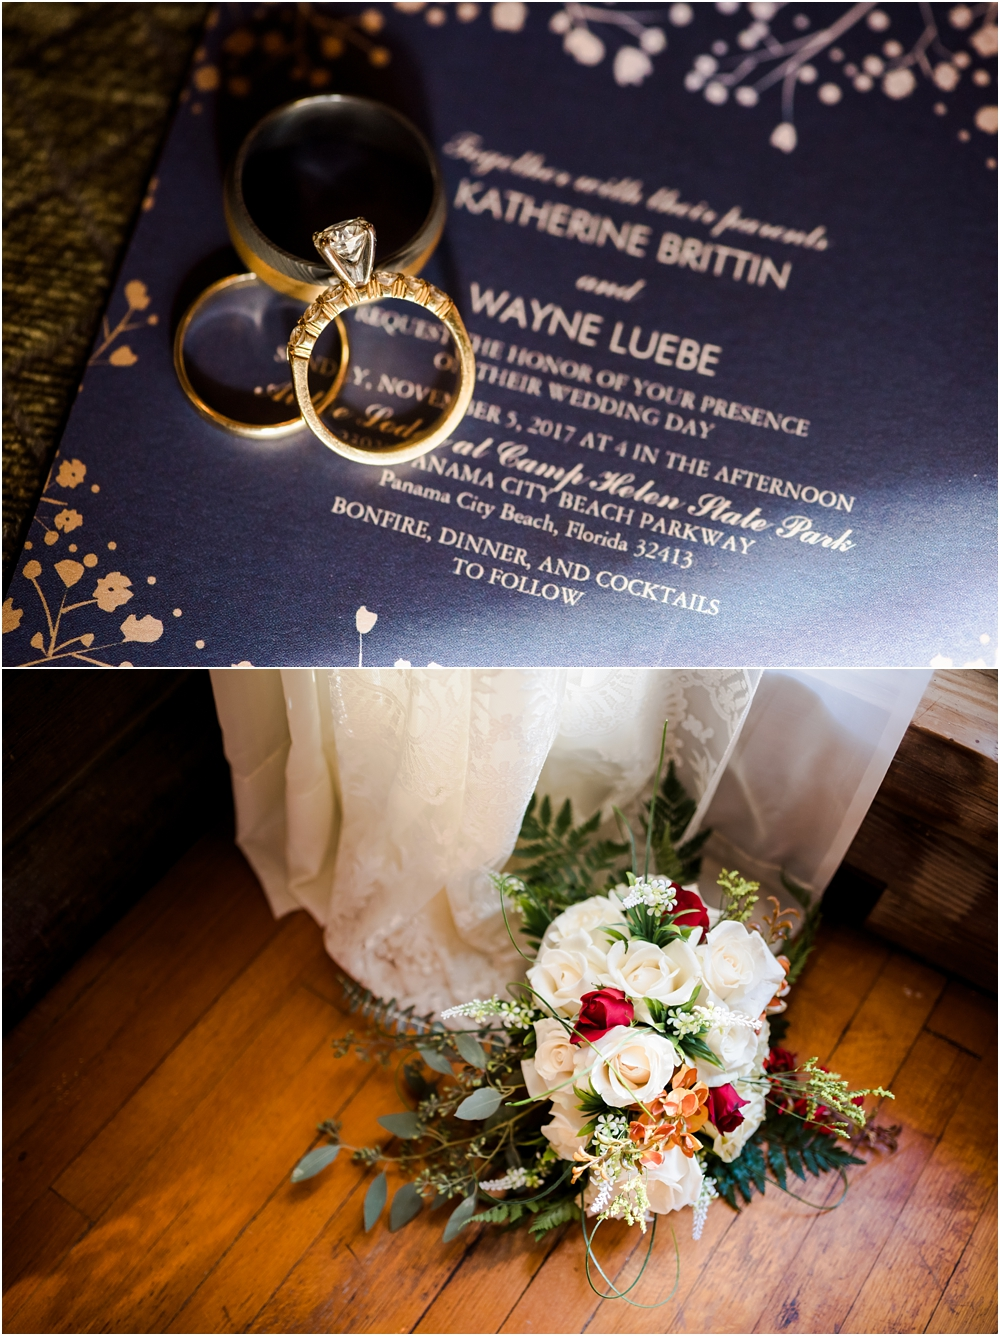 luebe-florida-wedding-photographer-kiersten-grant-6.jpg